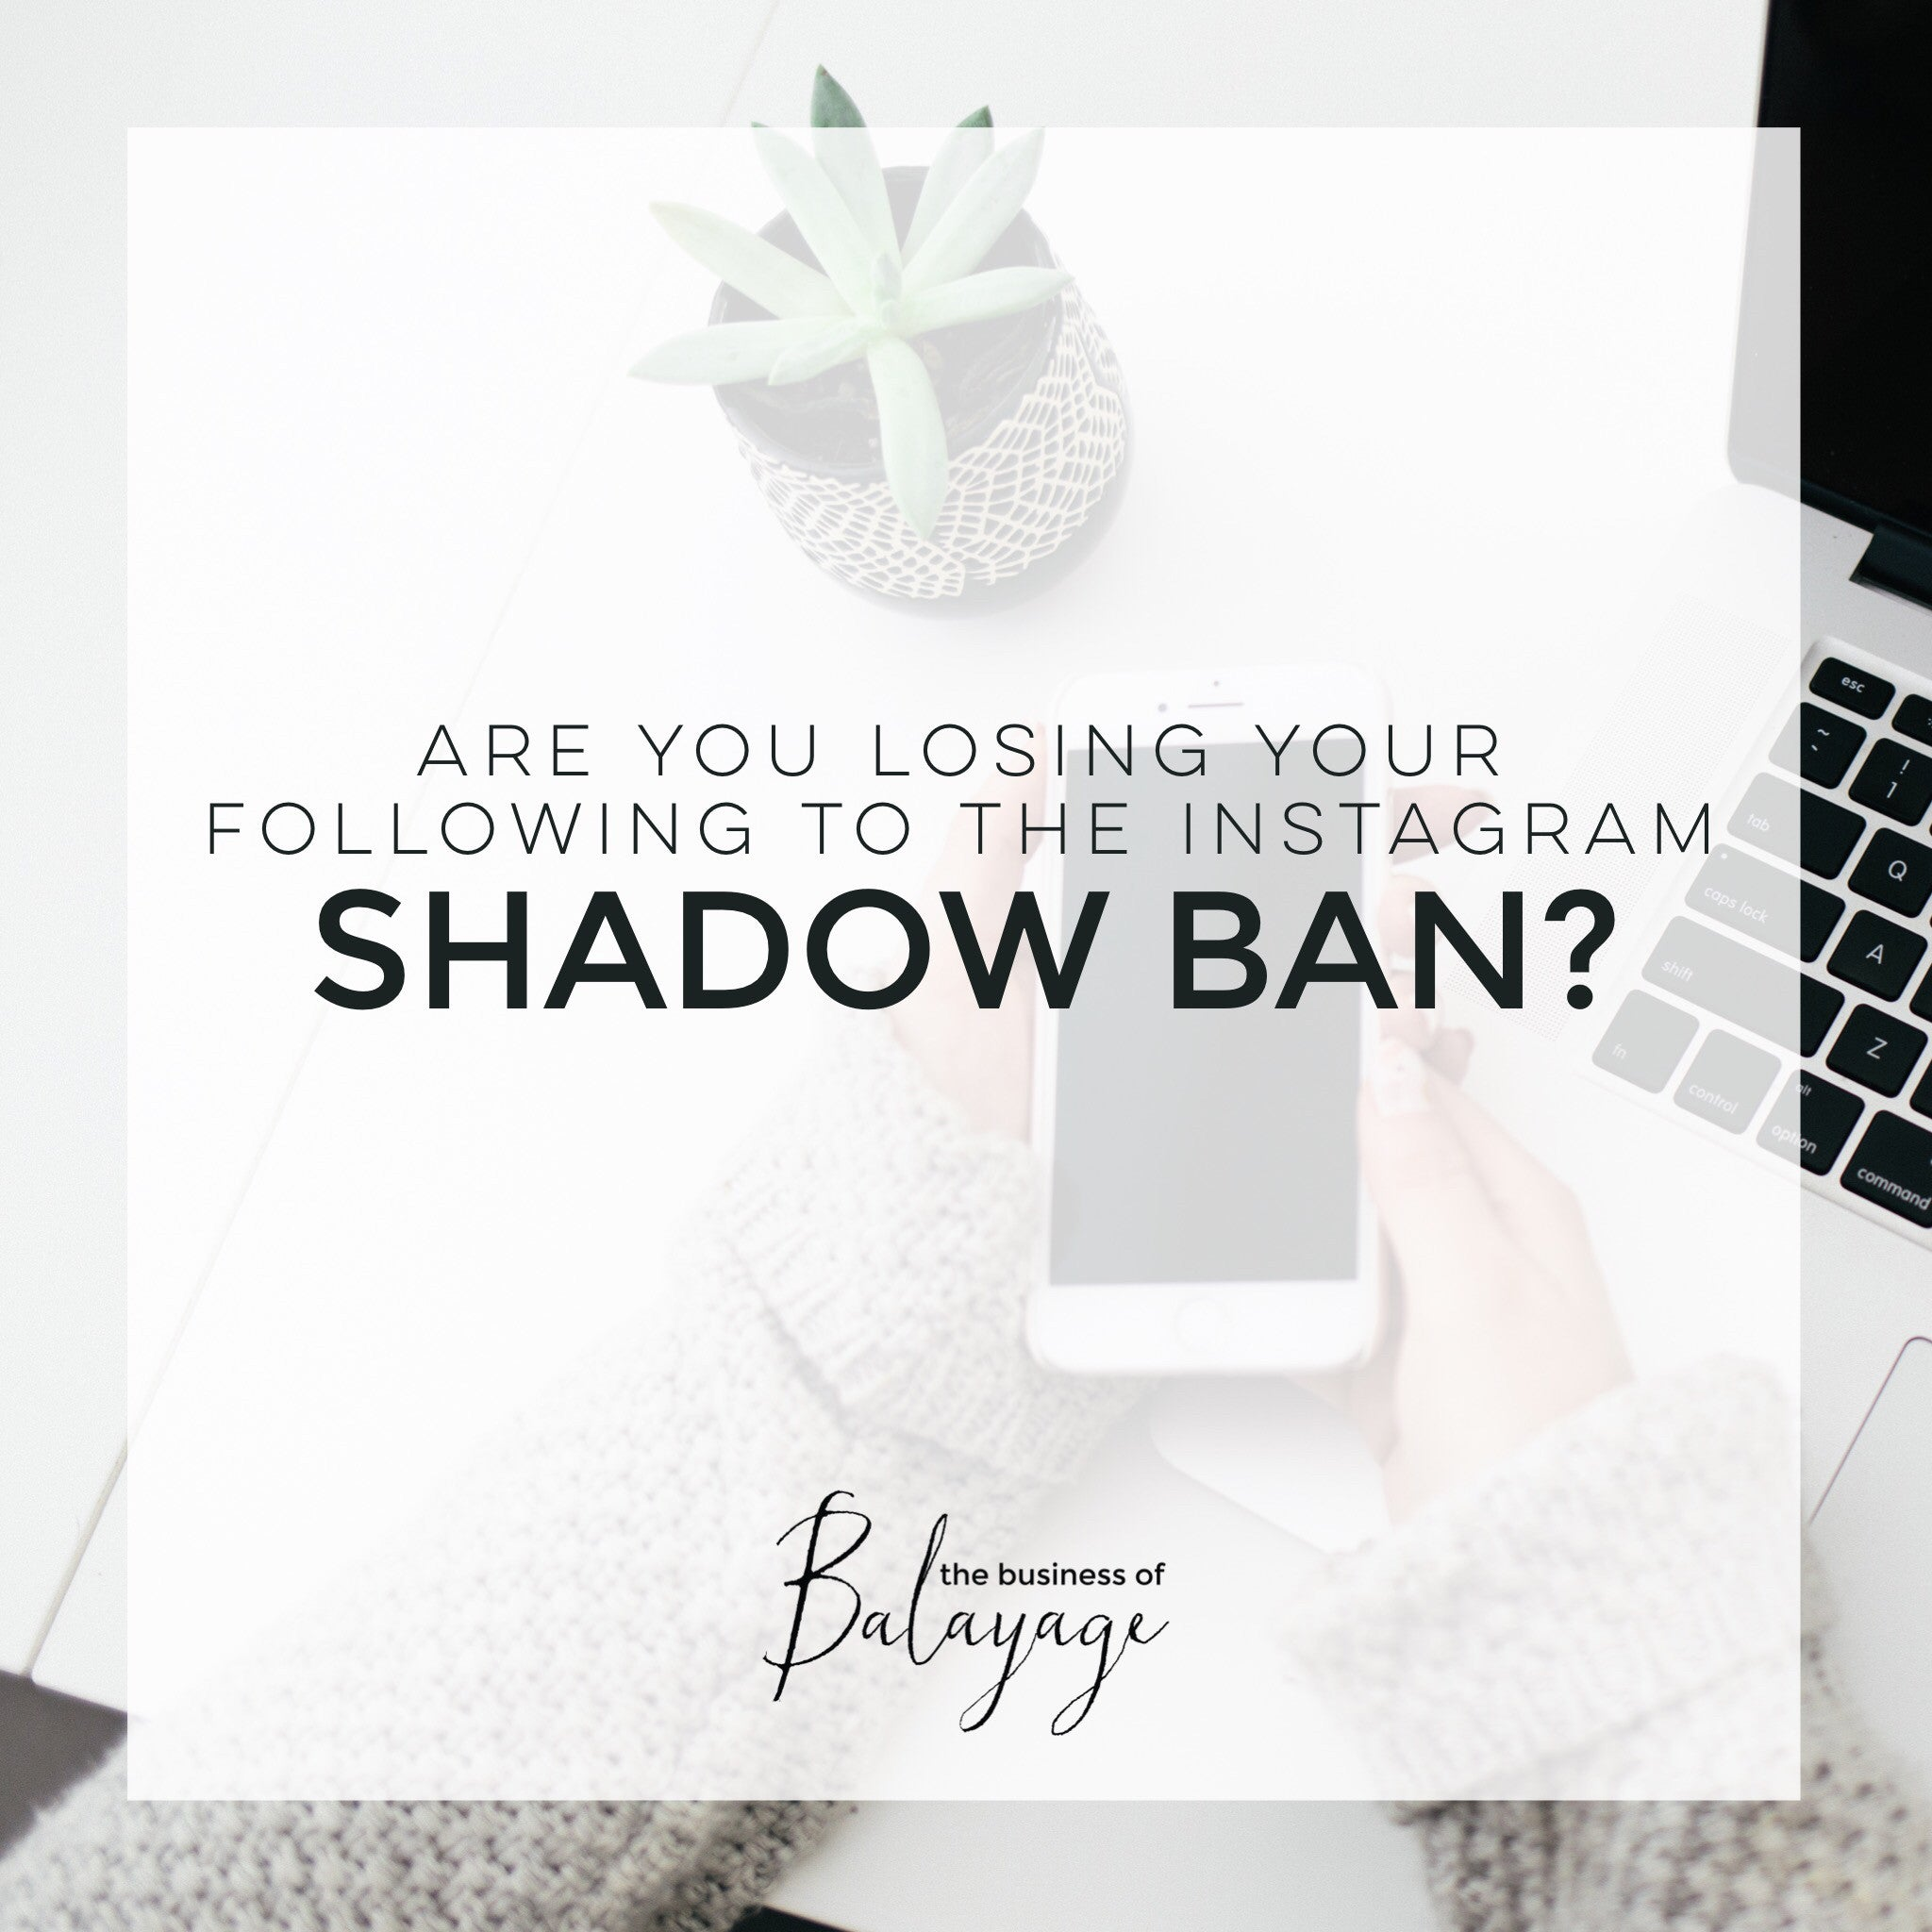 Are you losing your following to the Instagram Shadow Ban?